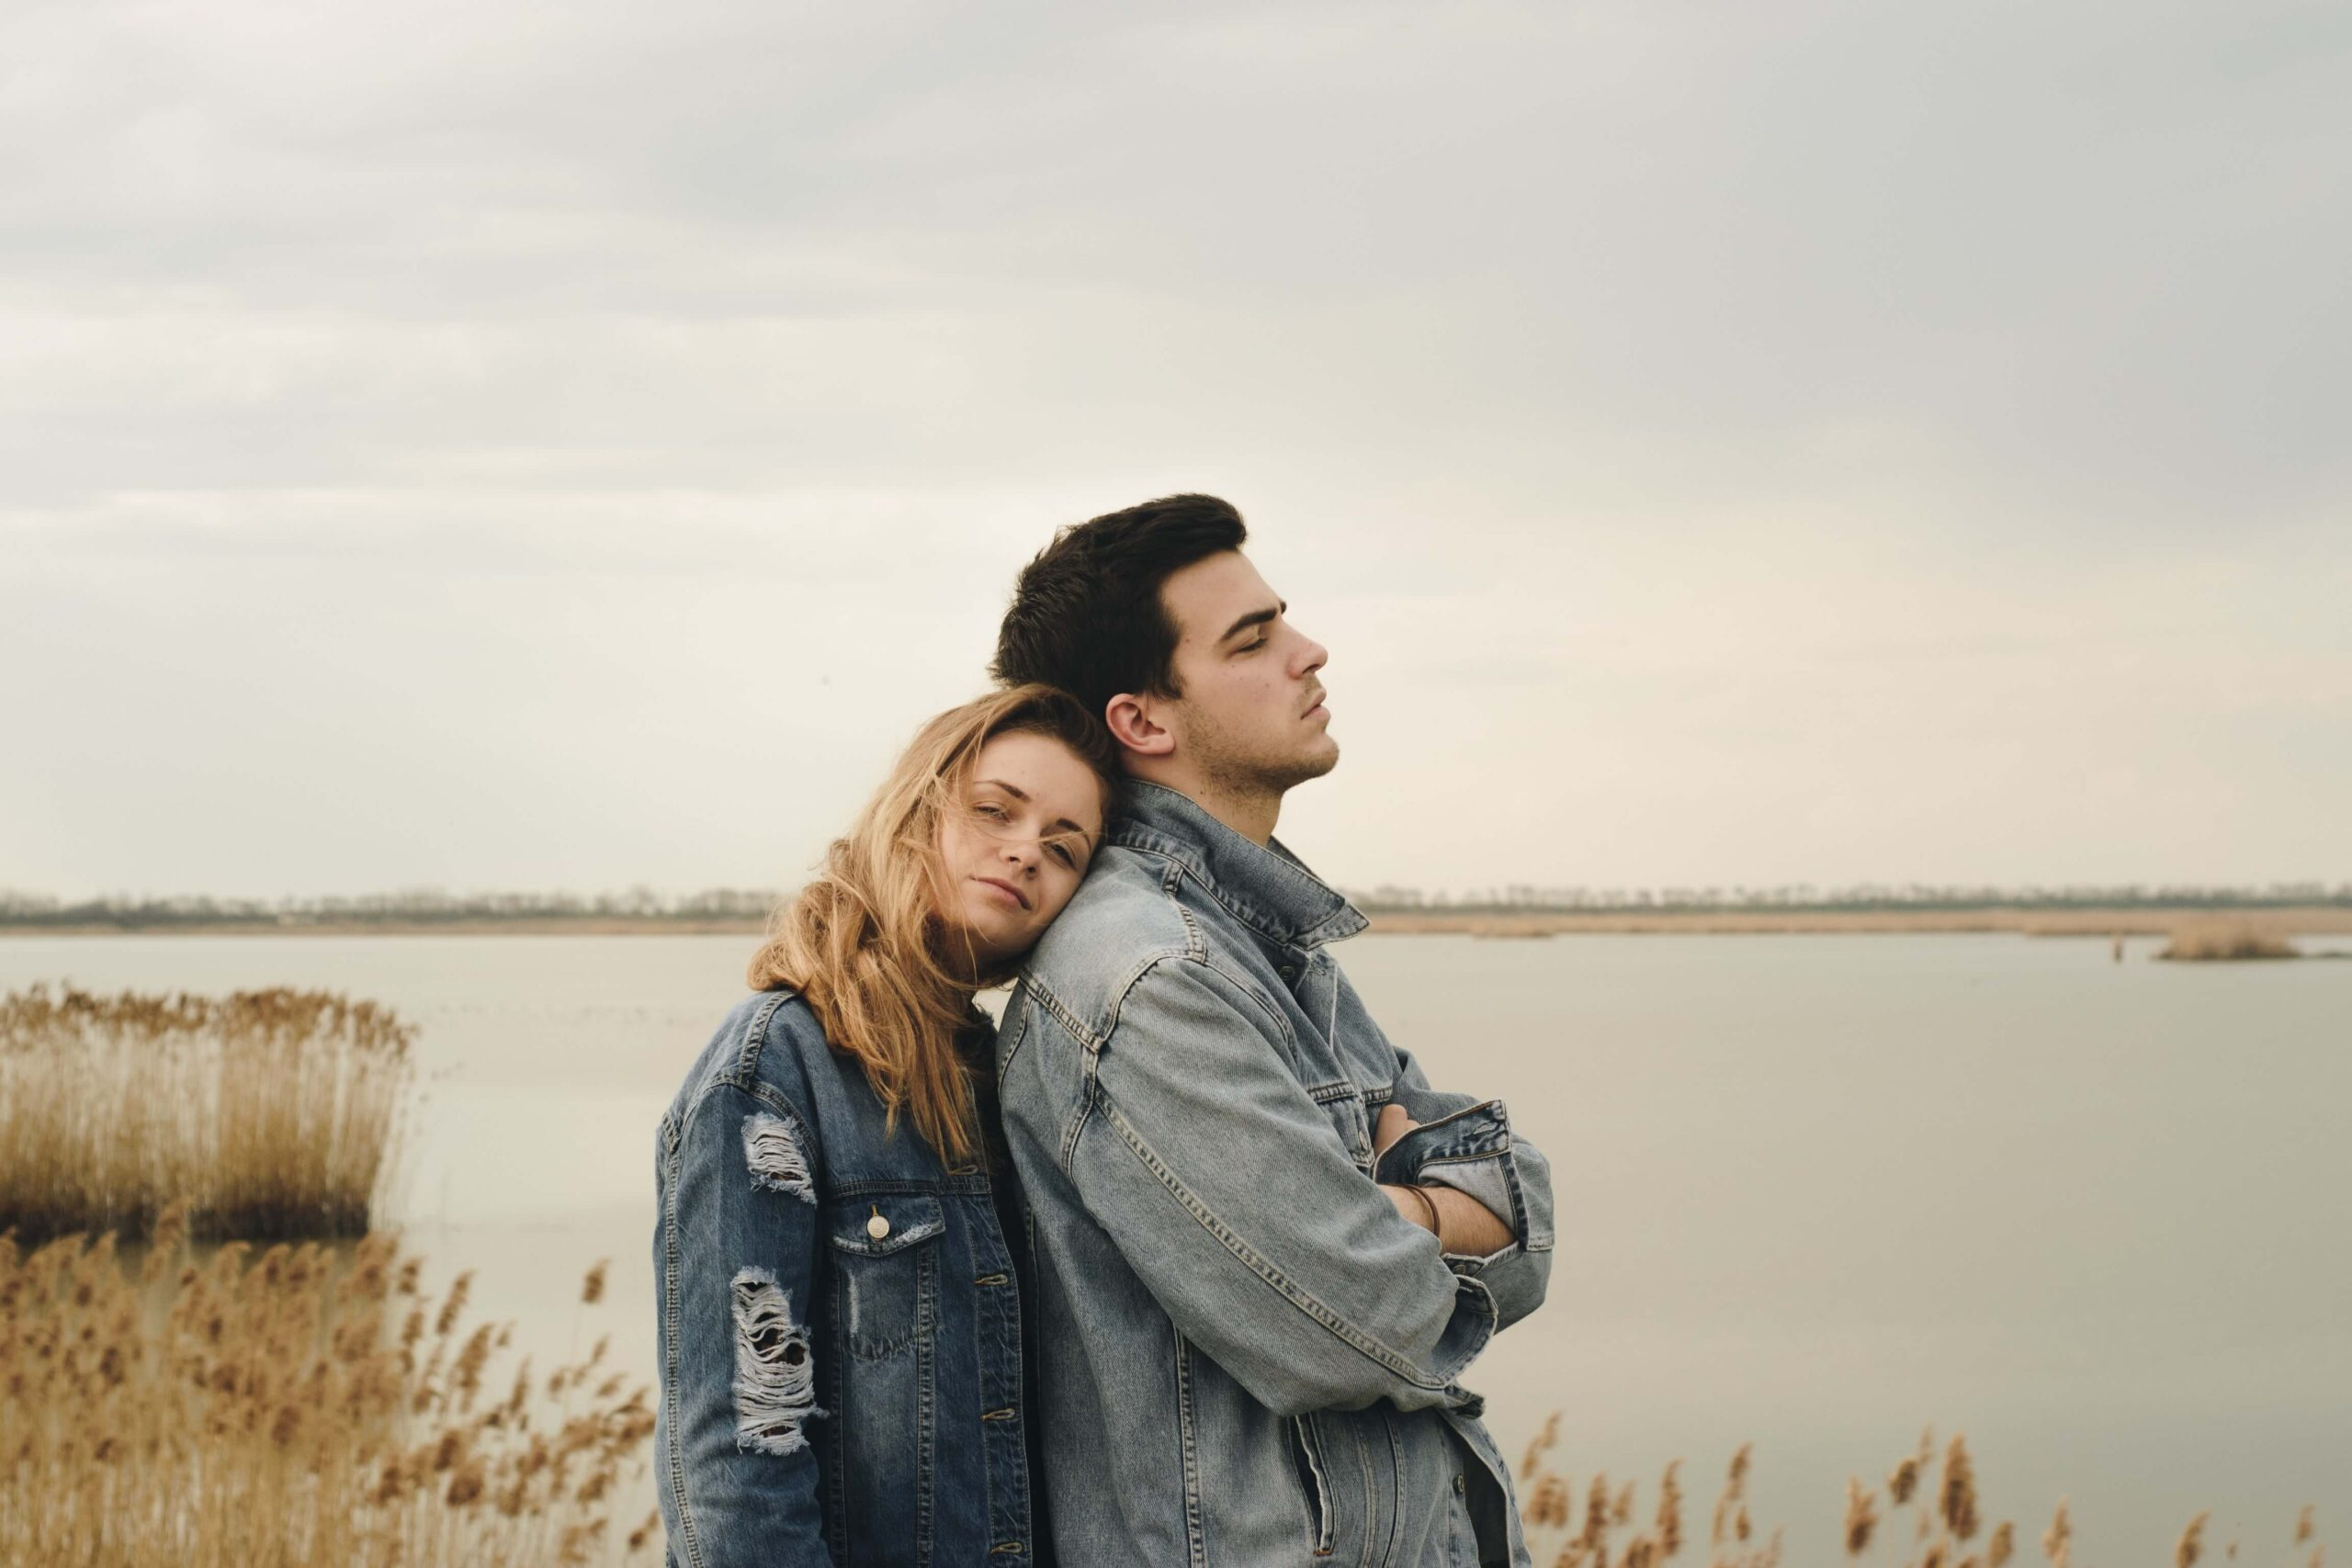 A somber-looking couple stands together at the bay